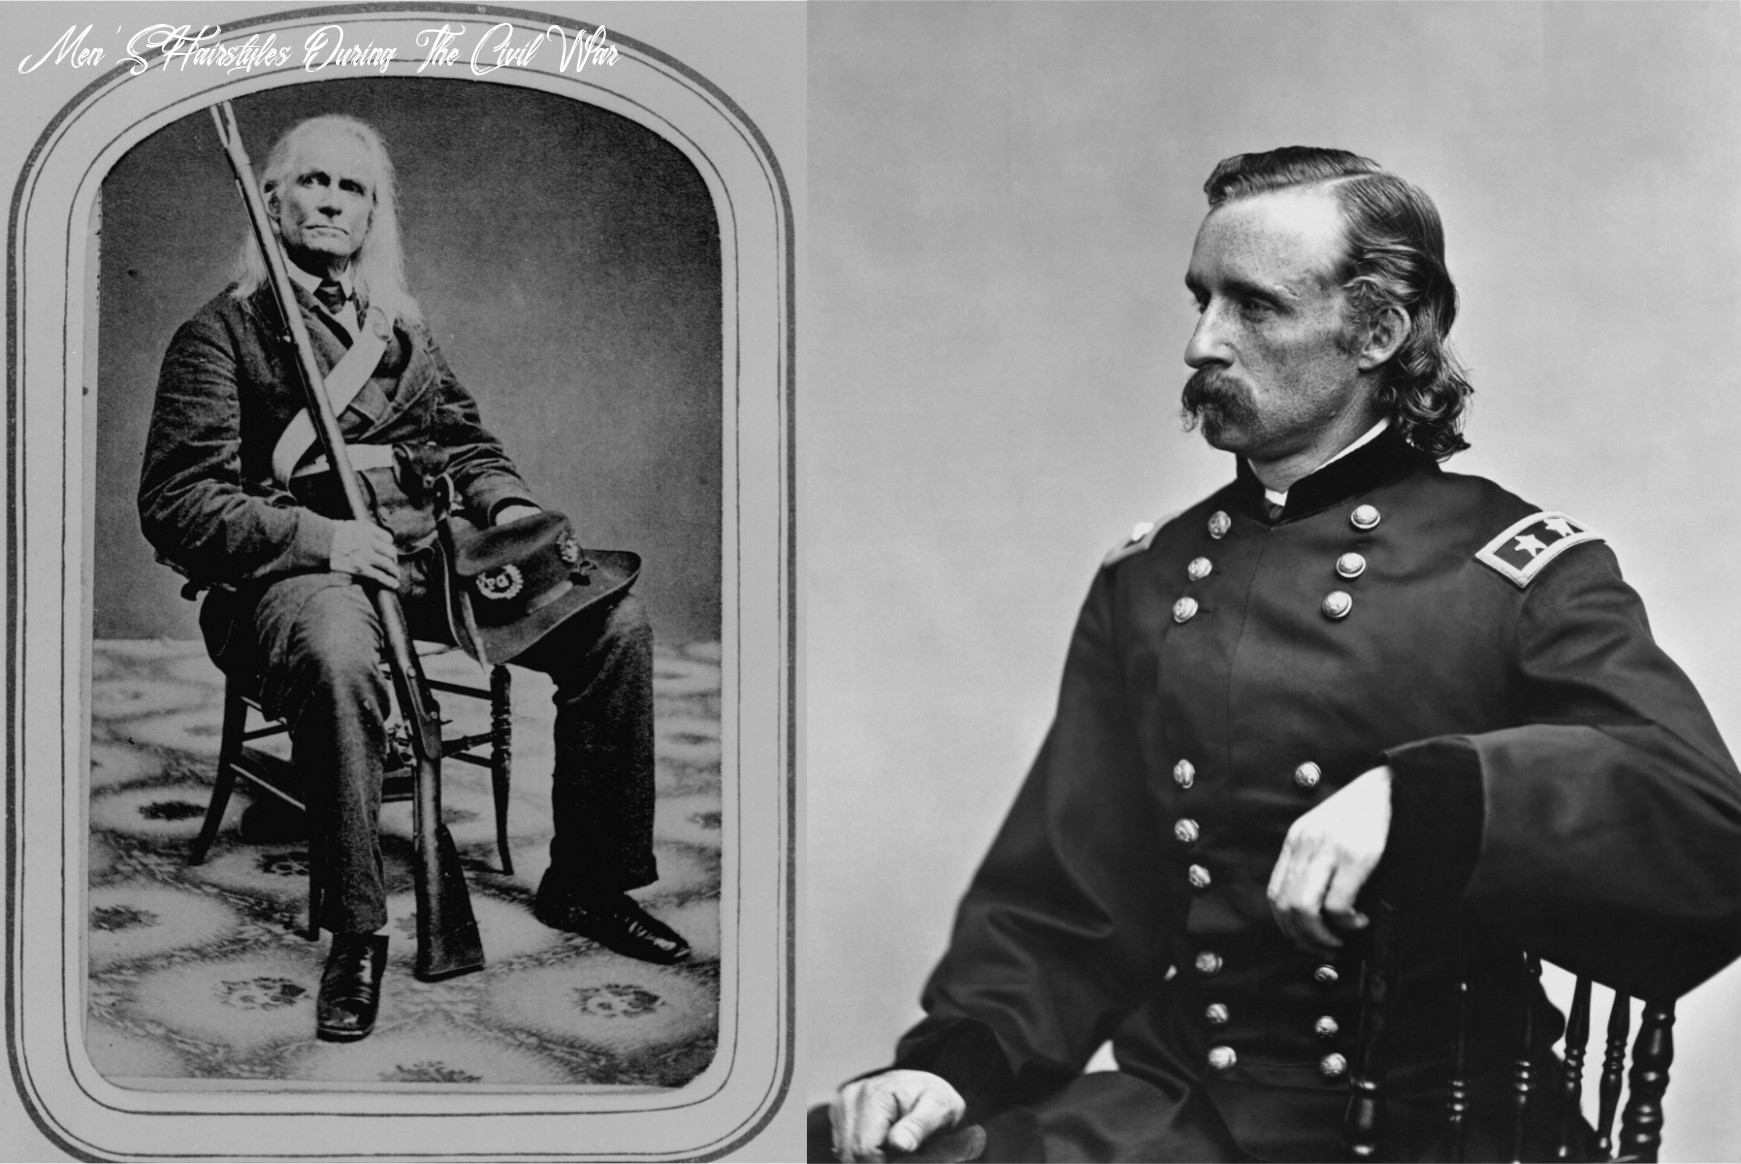 Civil war soldiers used hair dye to make themselves look better in